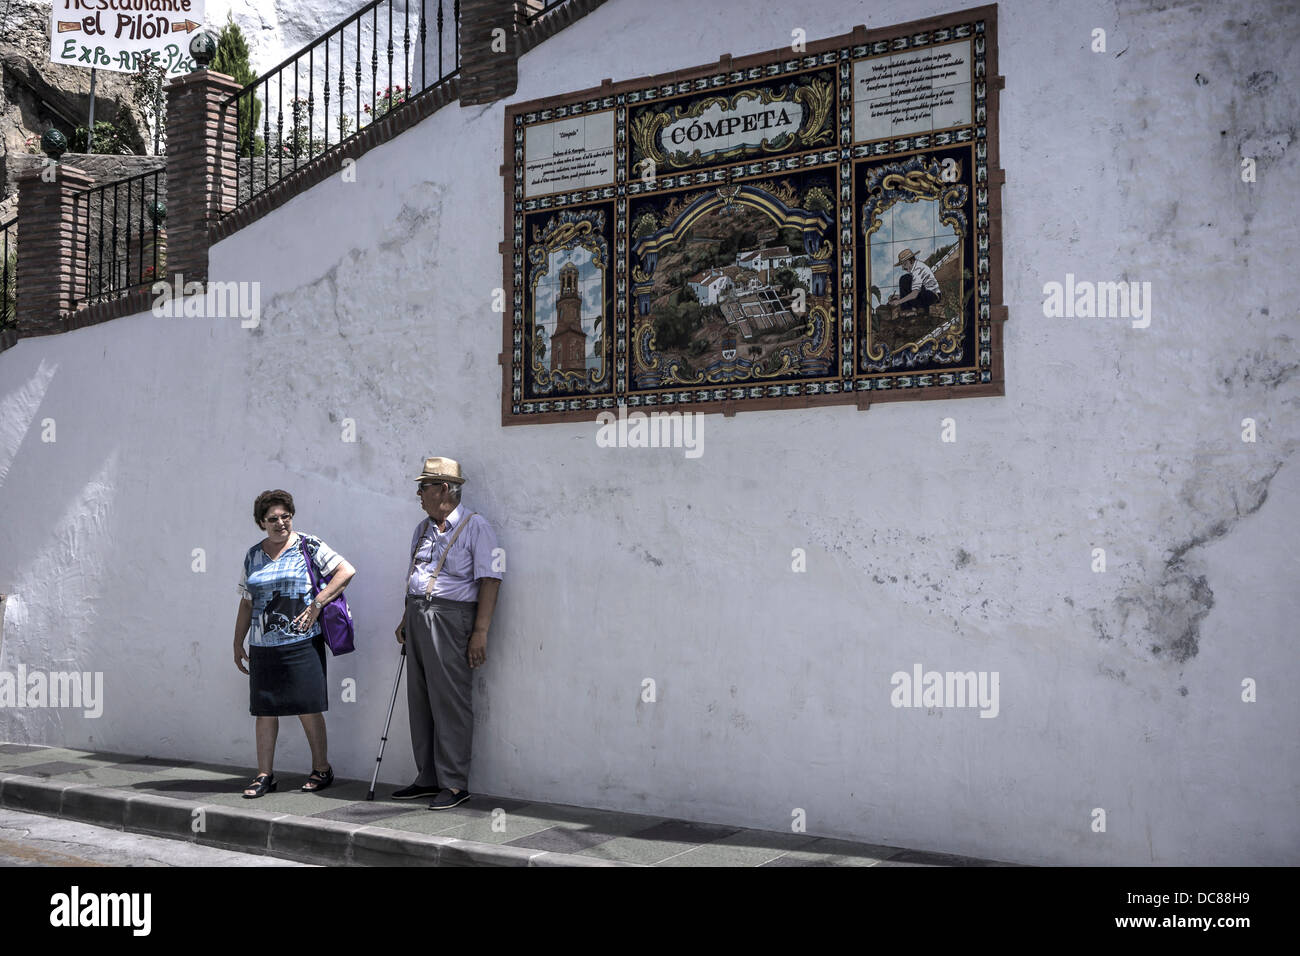 Two residents of Competa chat under one of the tiled signs that are found in the whitewashed Andalusian town. - Stock Image